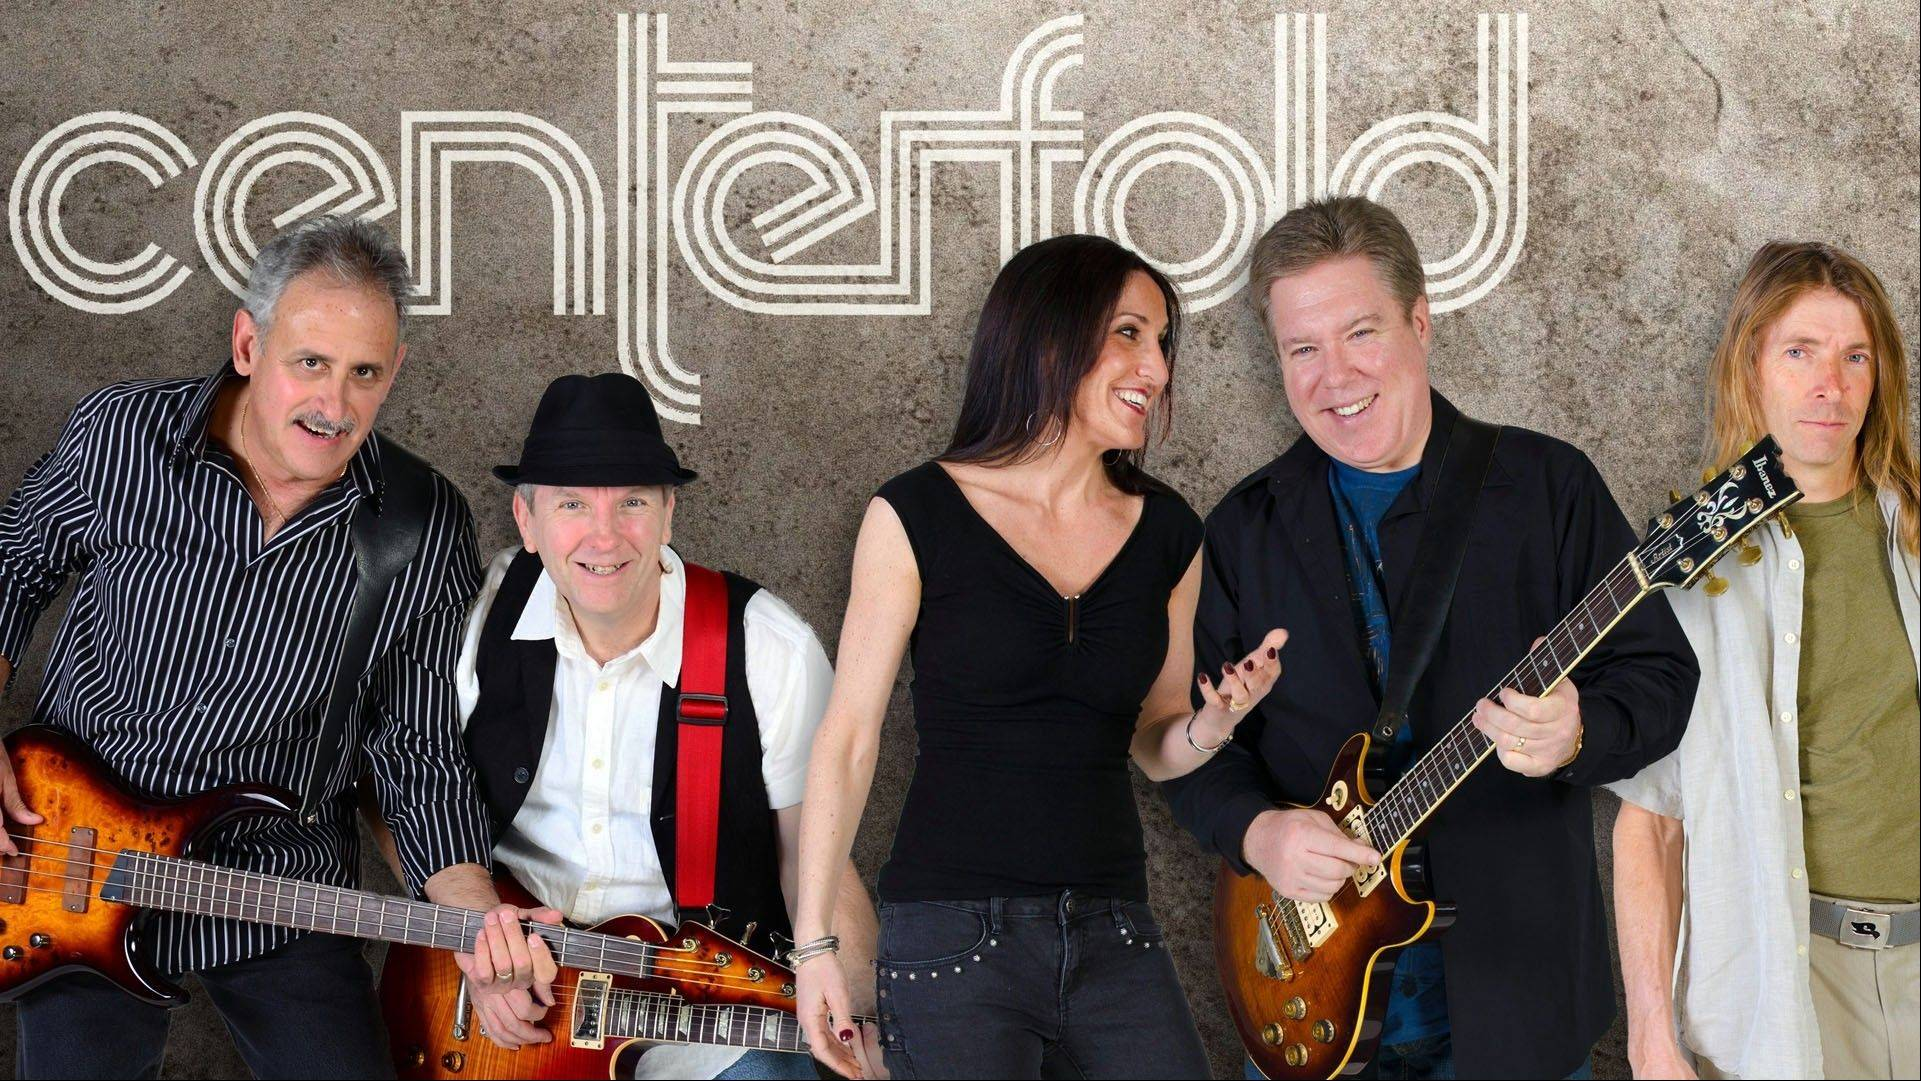 Centerfold will perform a free concert in Hoffman Estates Thursday, July 18.